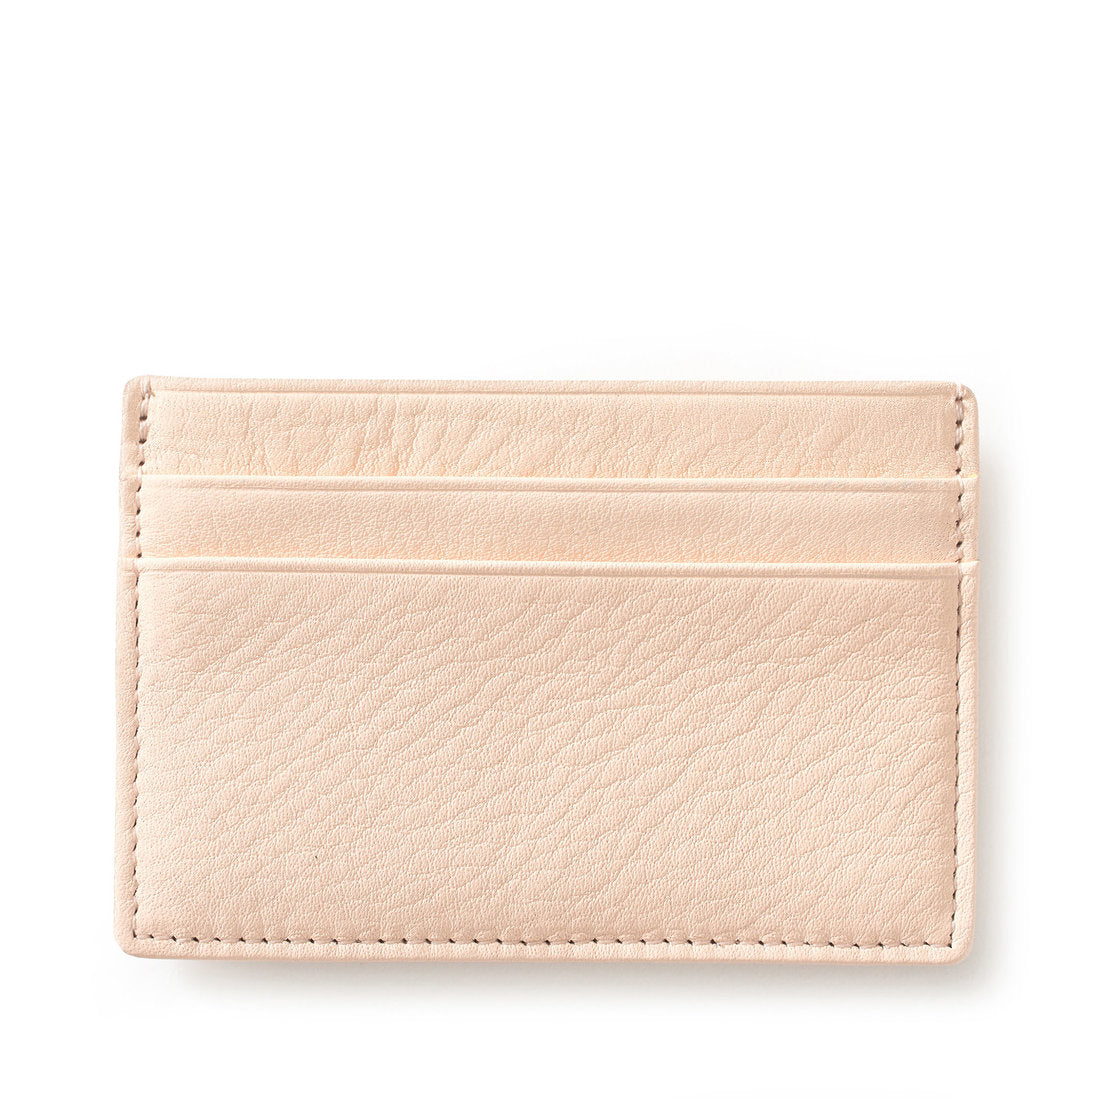 Leather RFID Blocker Business Card Holder - Cocus Pocus